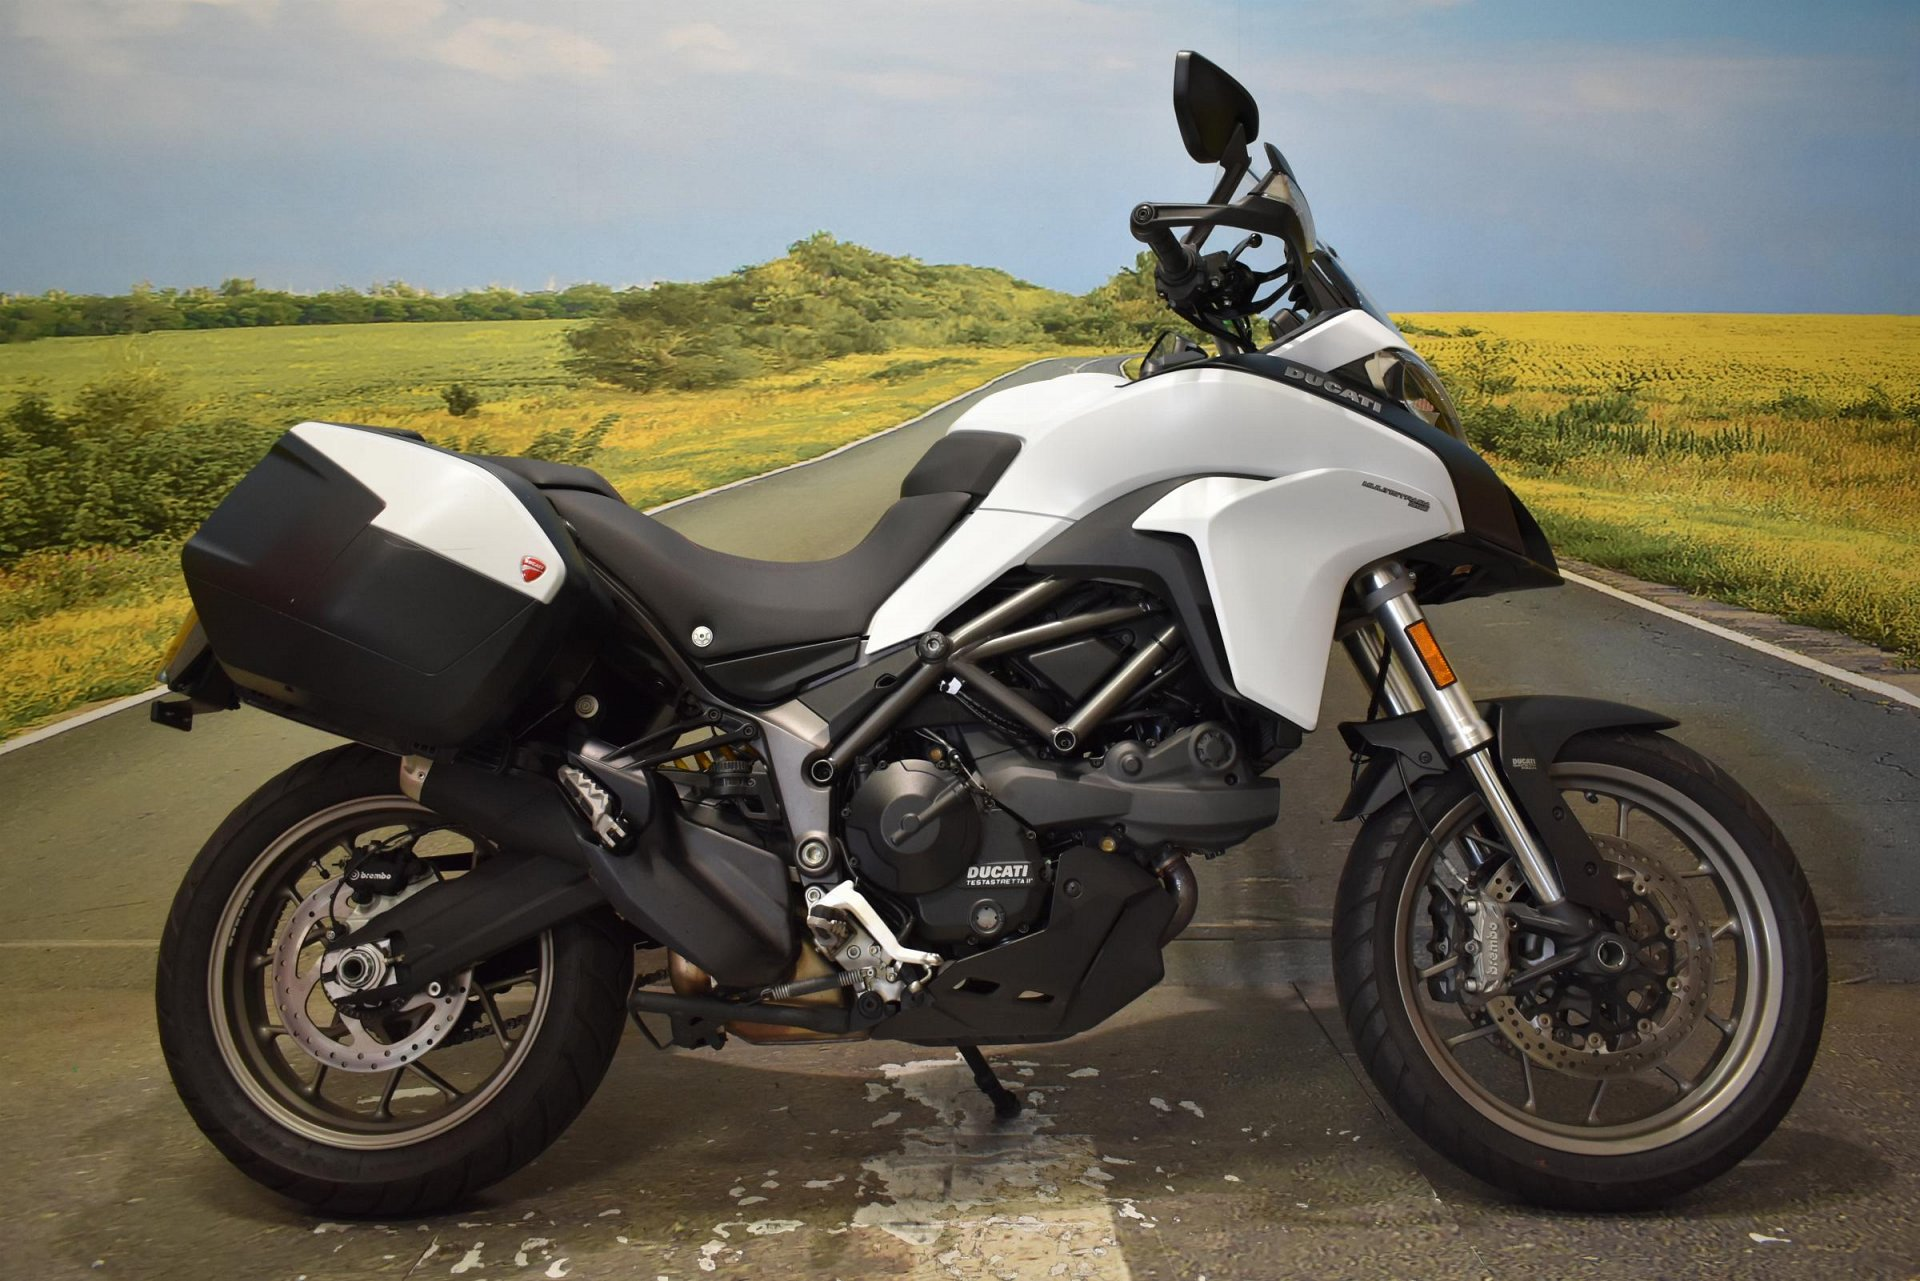 2017 Ducati Multistrada 950 for sale in Derbyshire